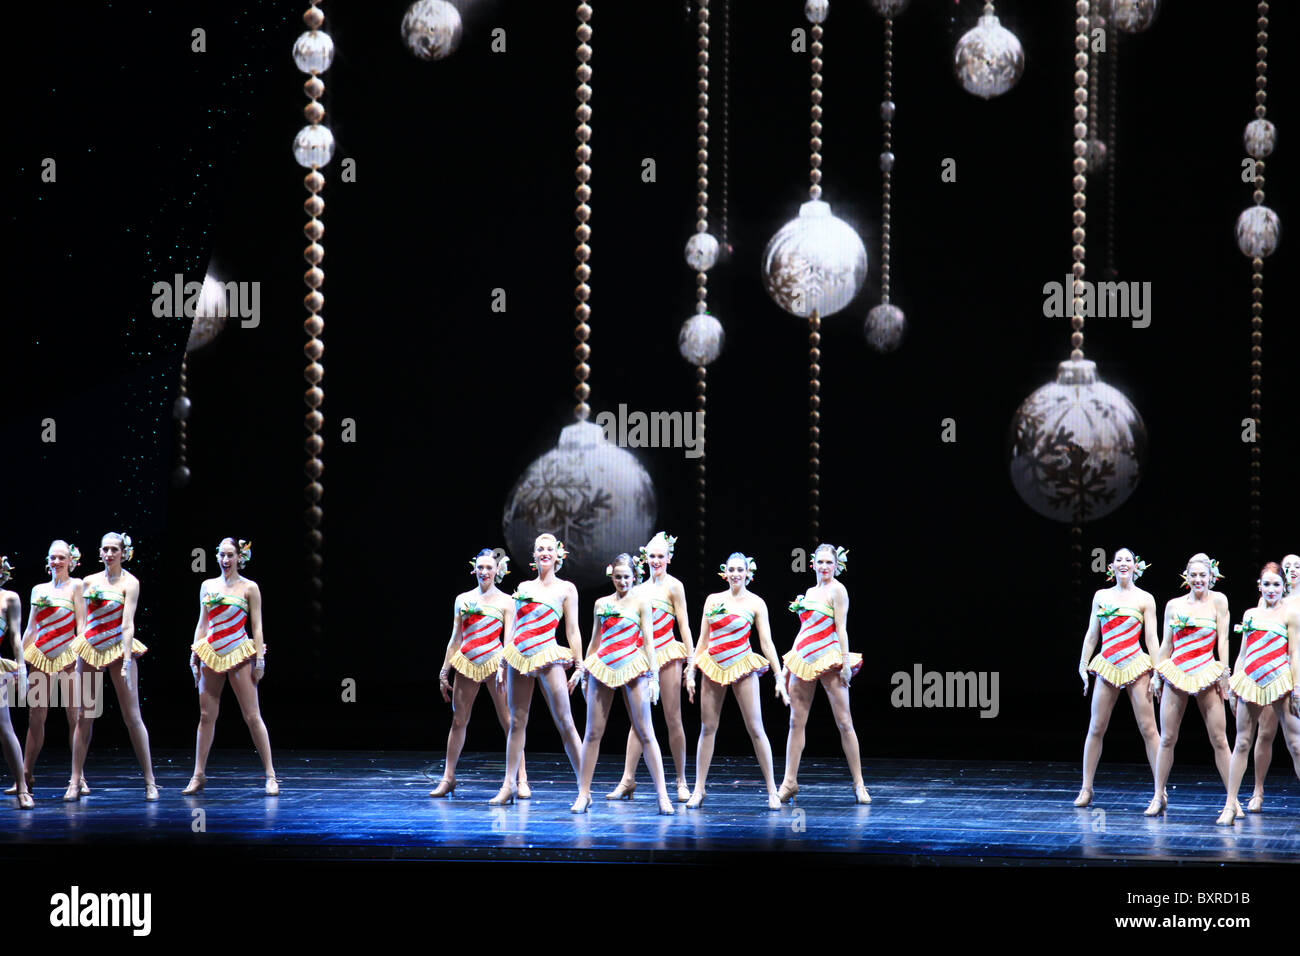 rockettes dancing radio city music hall christmas spectacular show in new york city 2010 - Rockettes Christmas Show